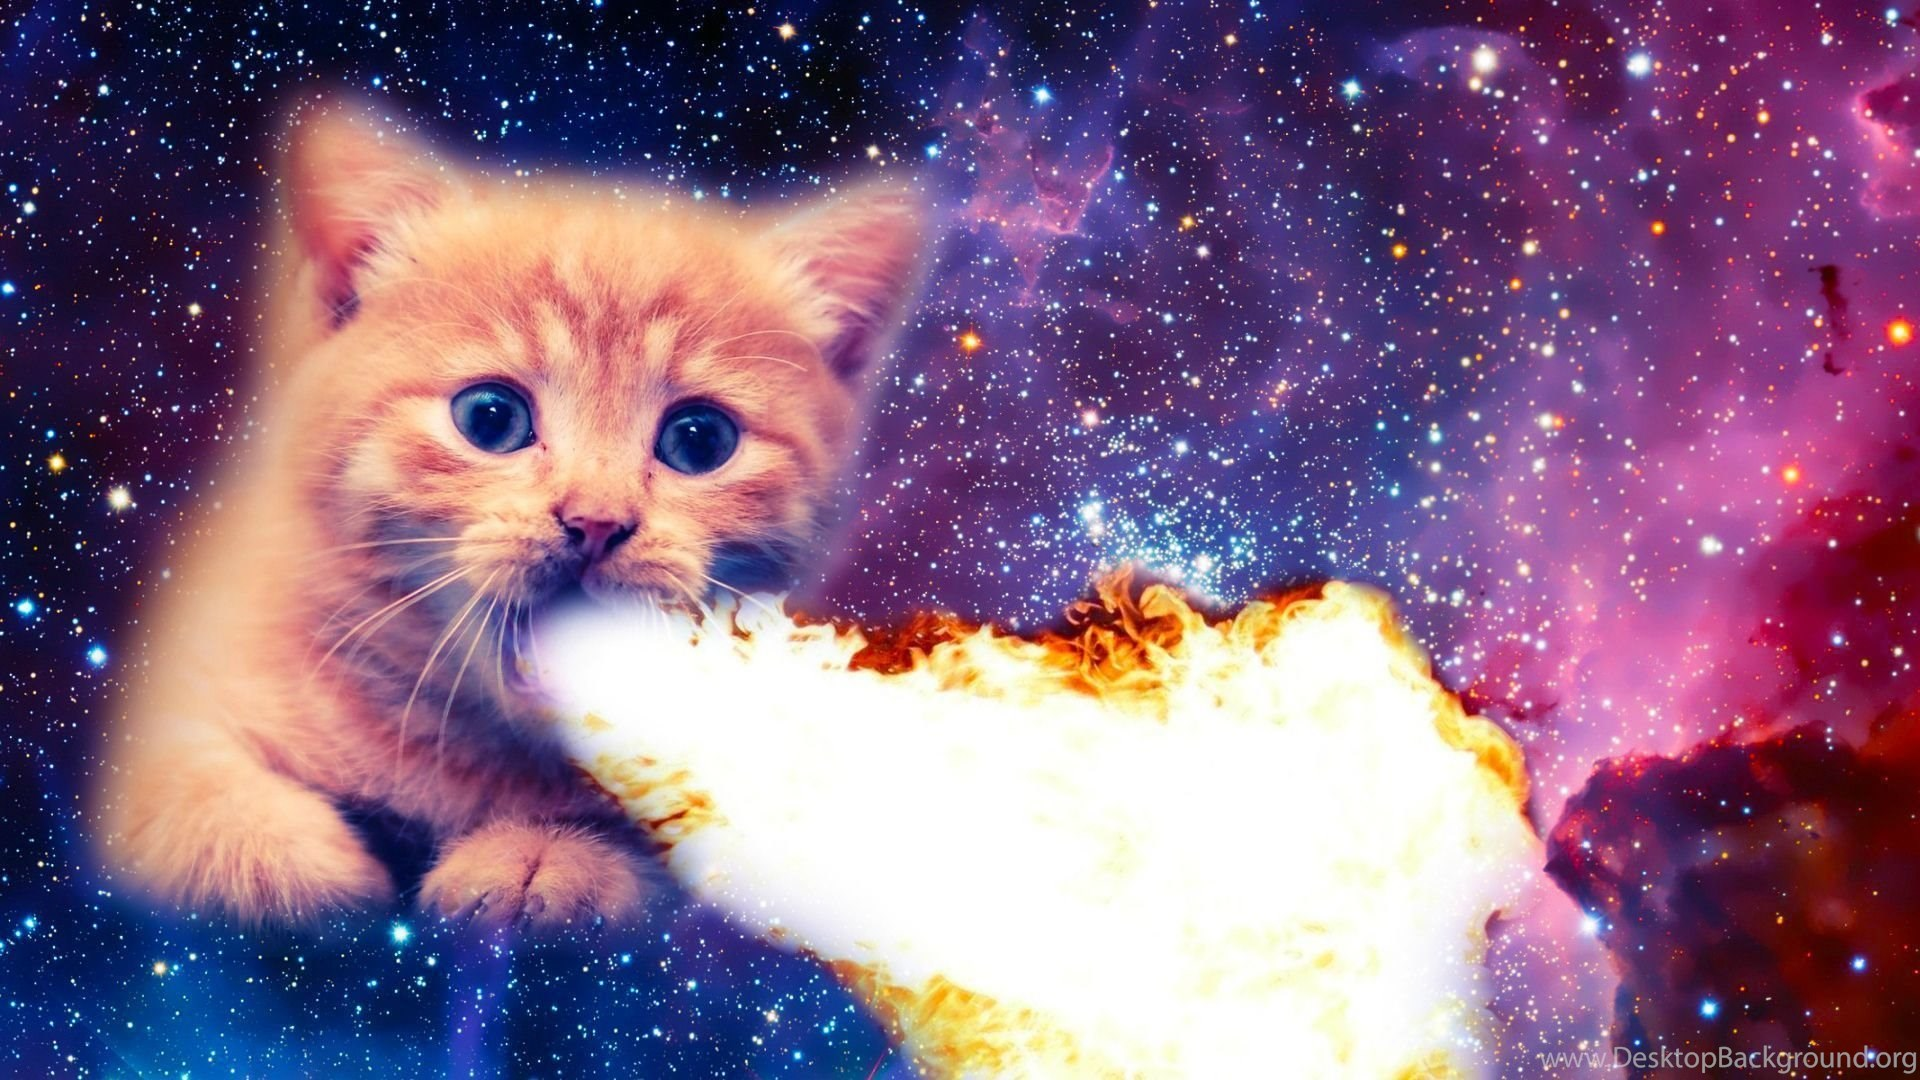 My fire breathing space cat imgur desktop background - Space kitty wallpaper ...